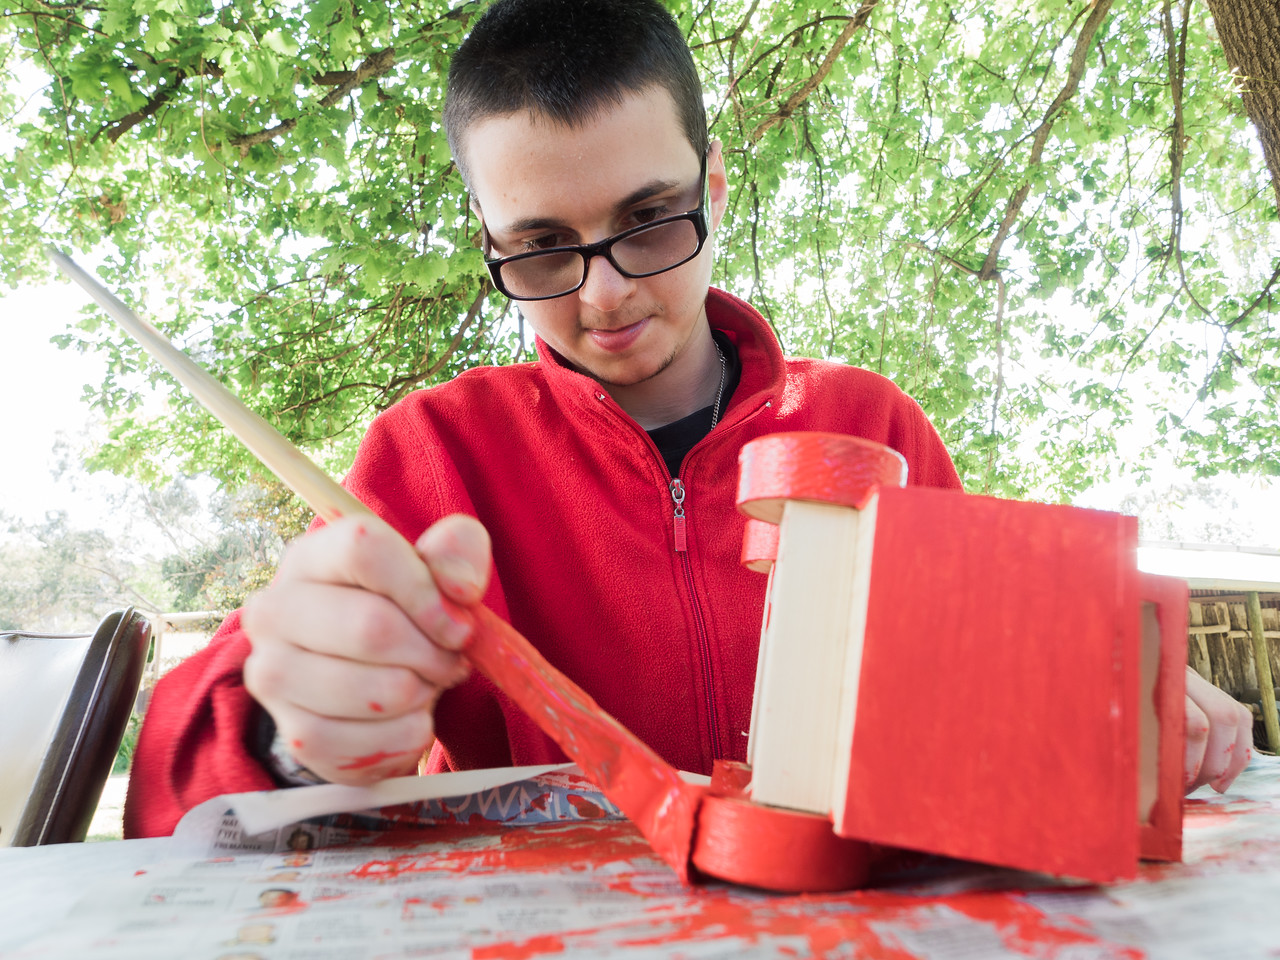 Man painting a wooden toy truck